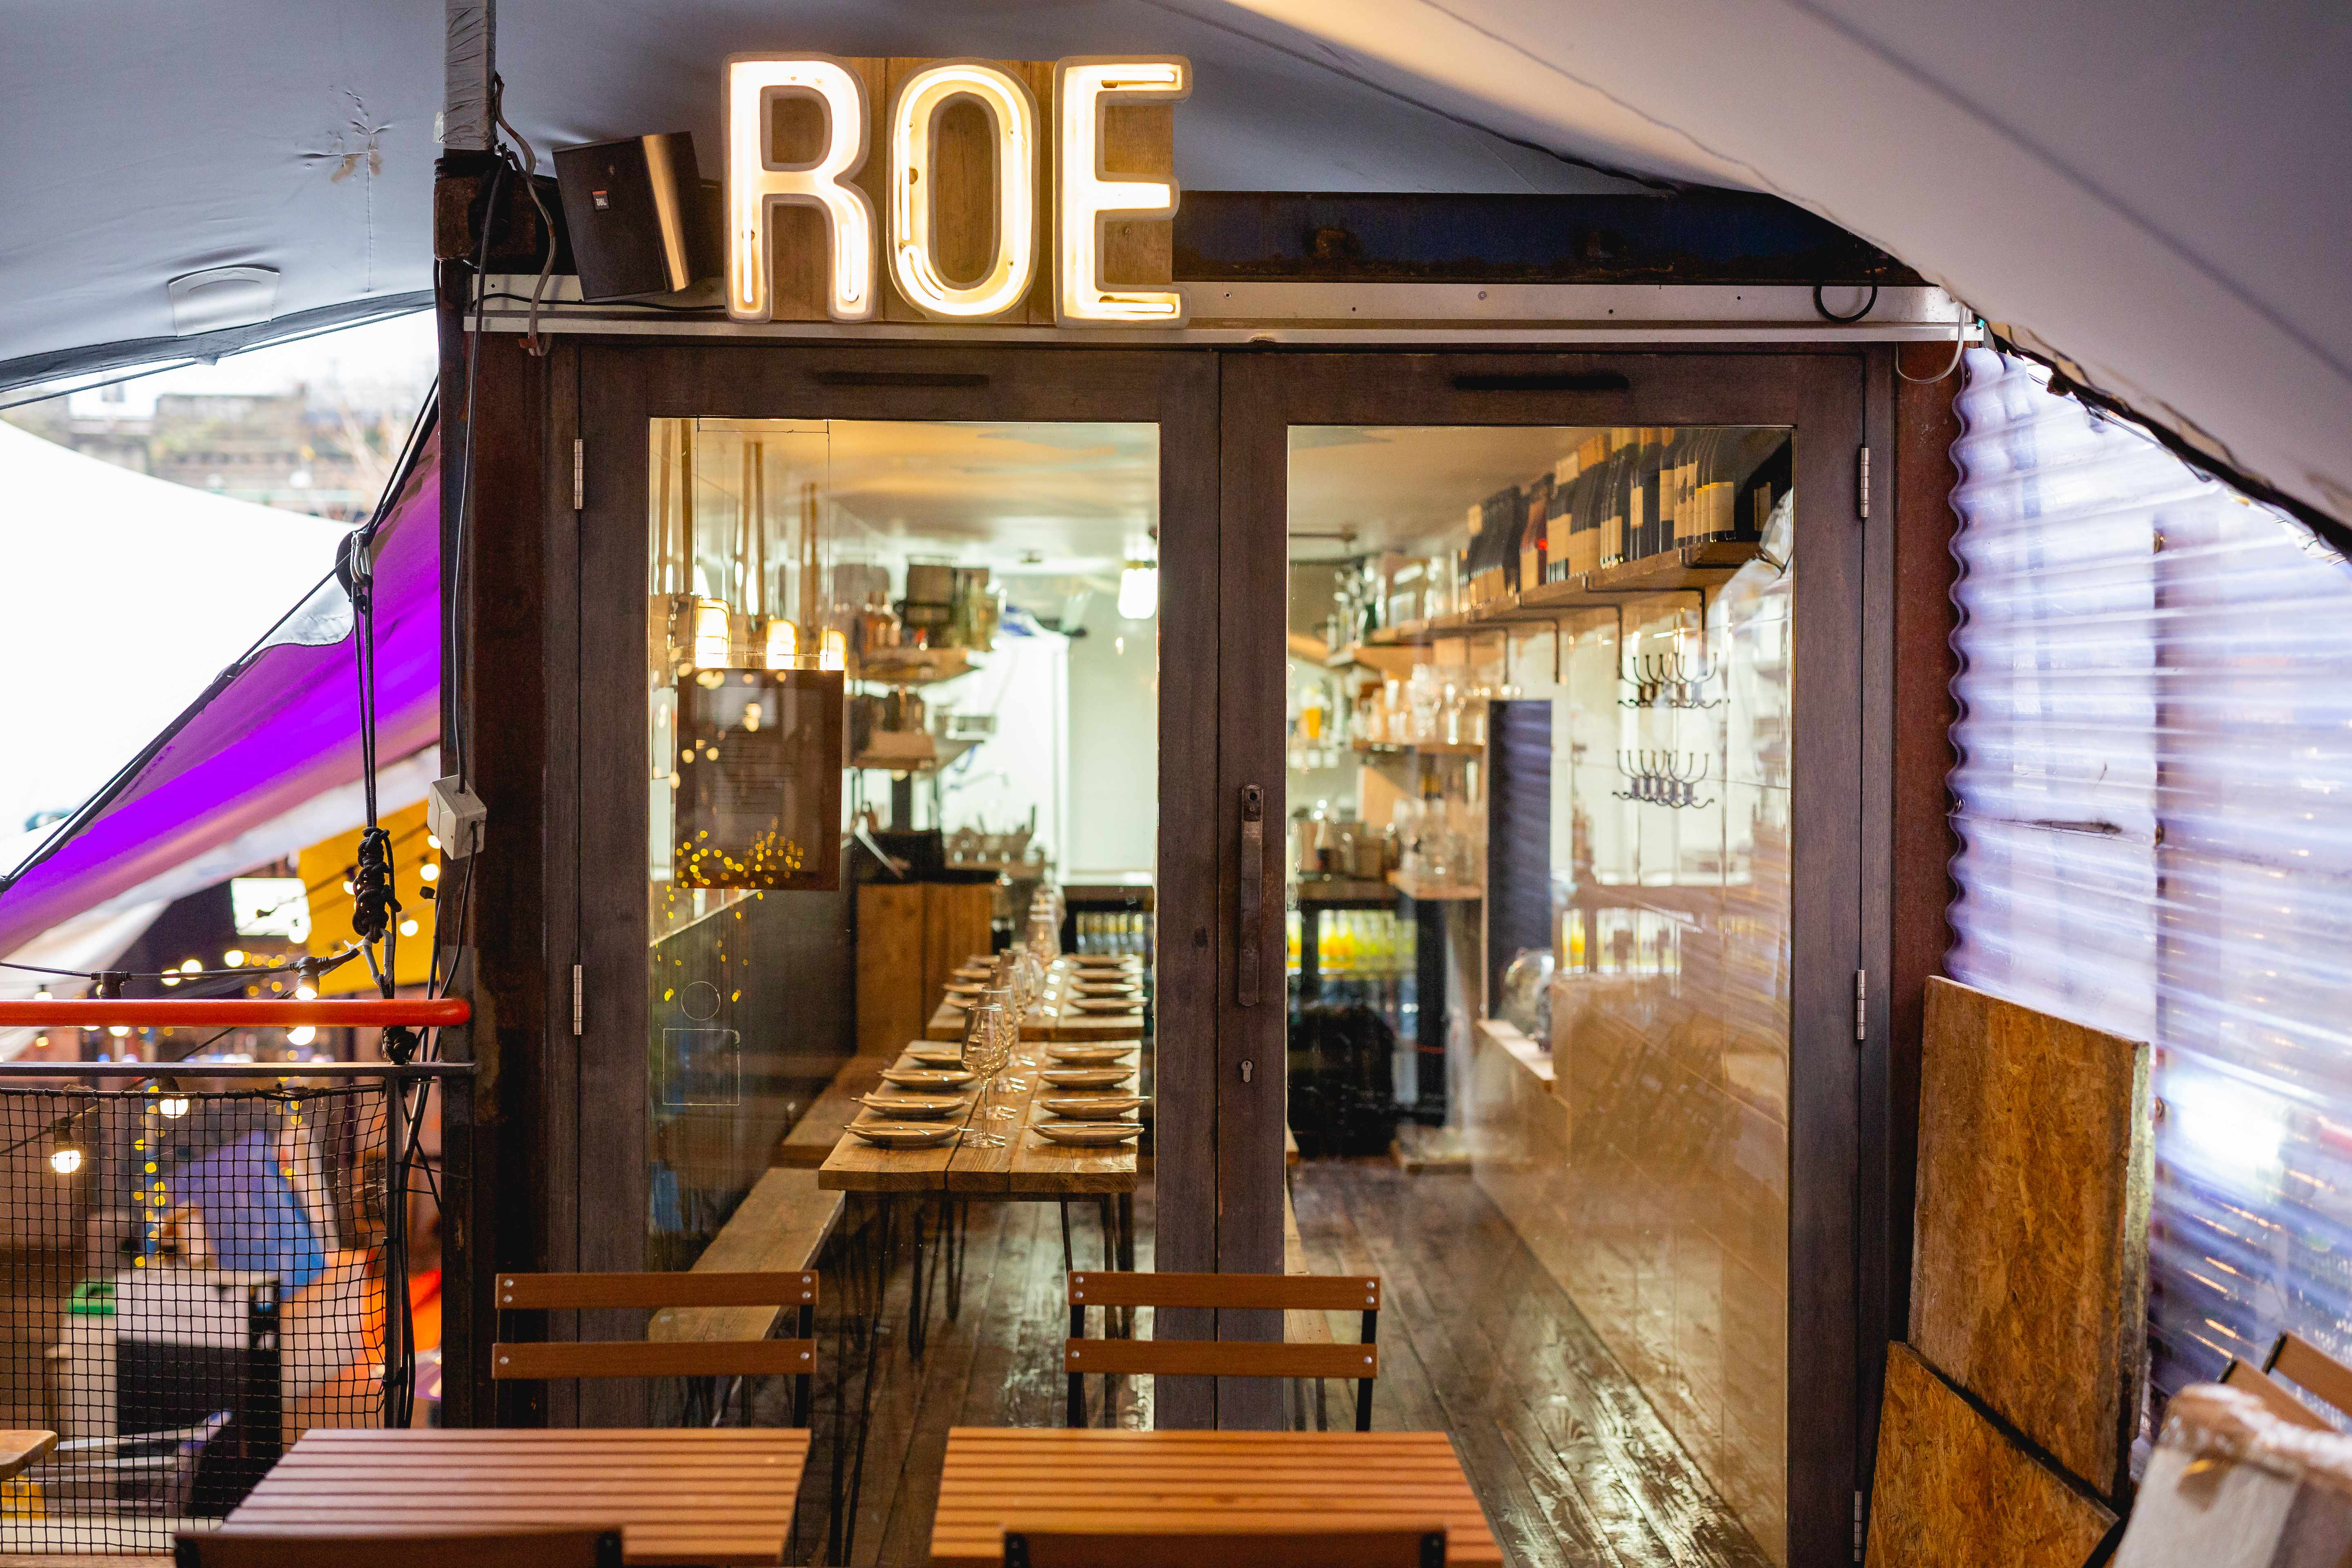 Doorway of Roe Pop Brixton with view of long wooden tables inside